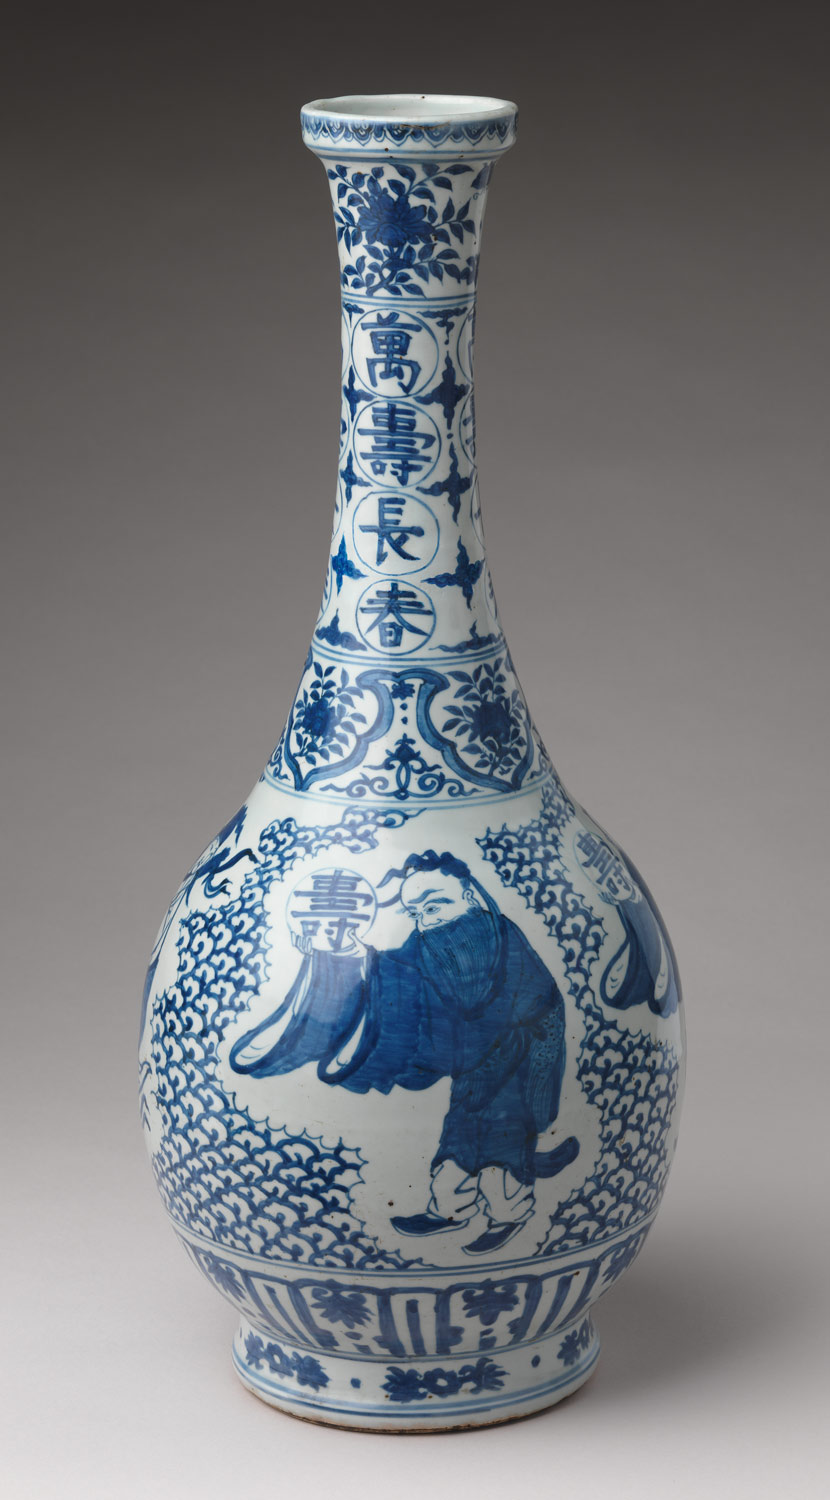 Bottle with Daoist Immortals